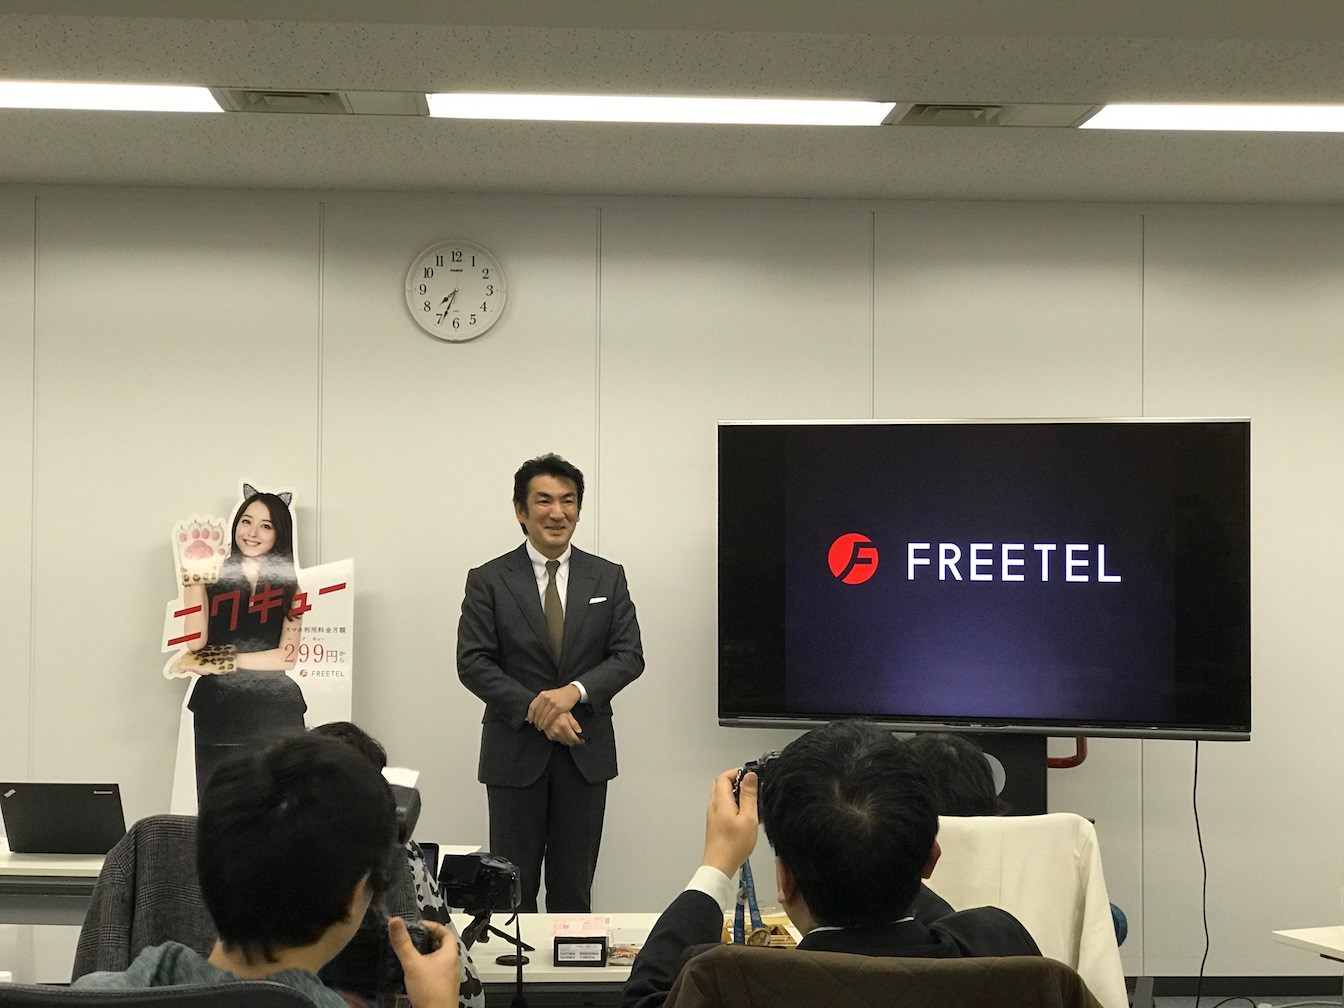 Freetel blogger event 2016 winter 2